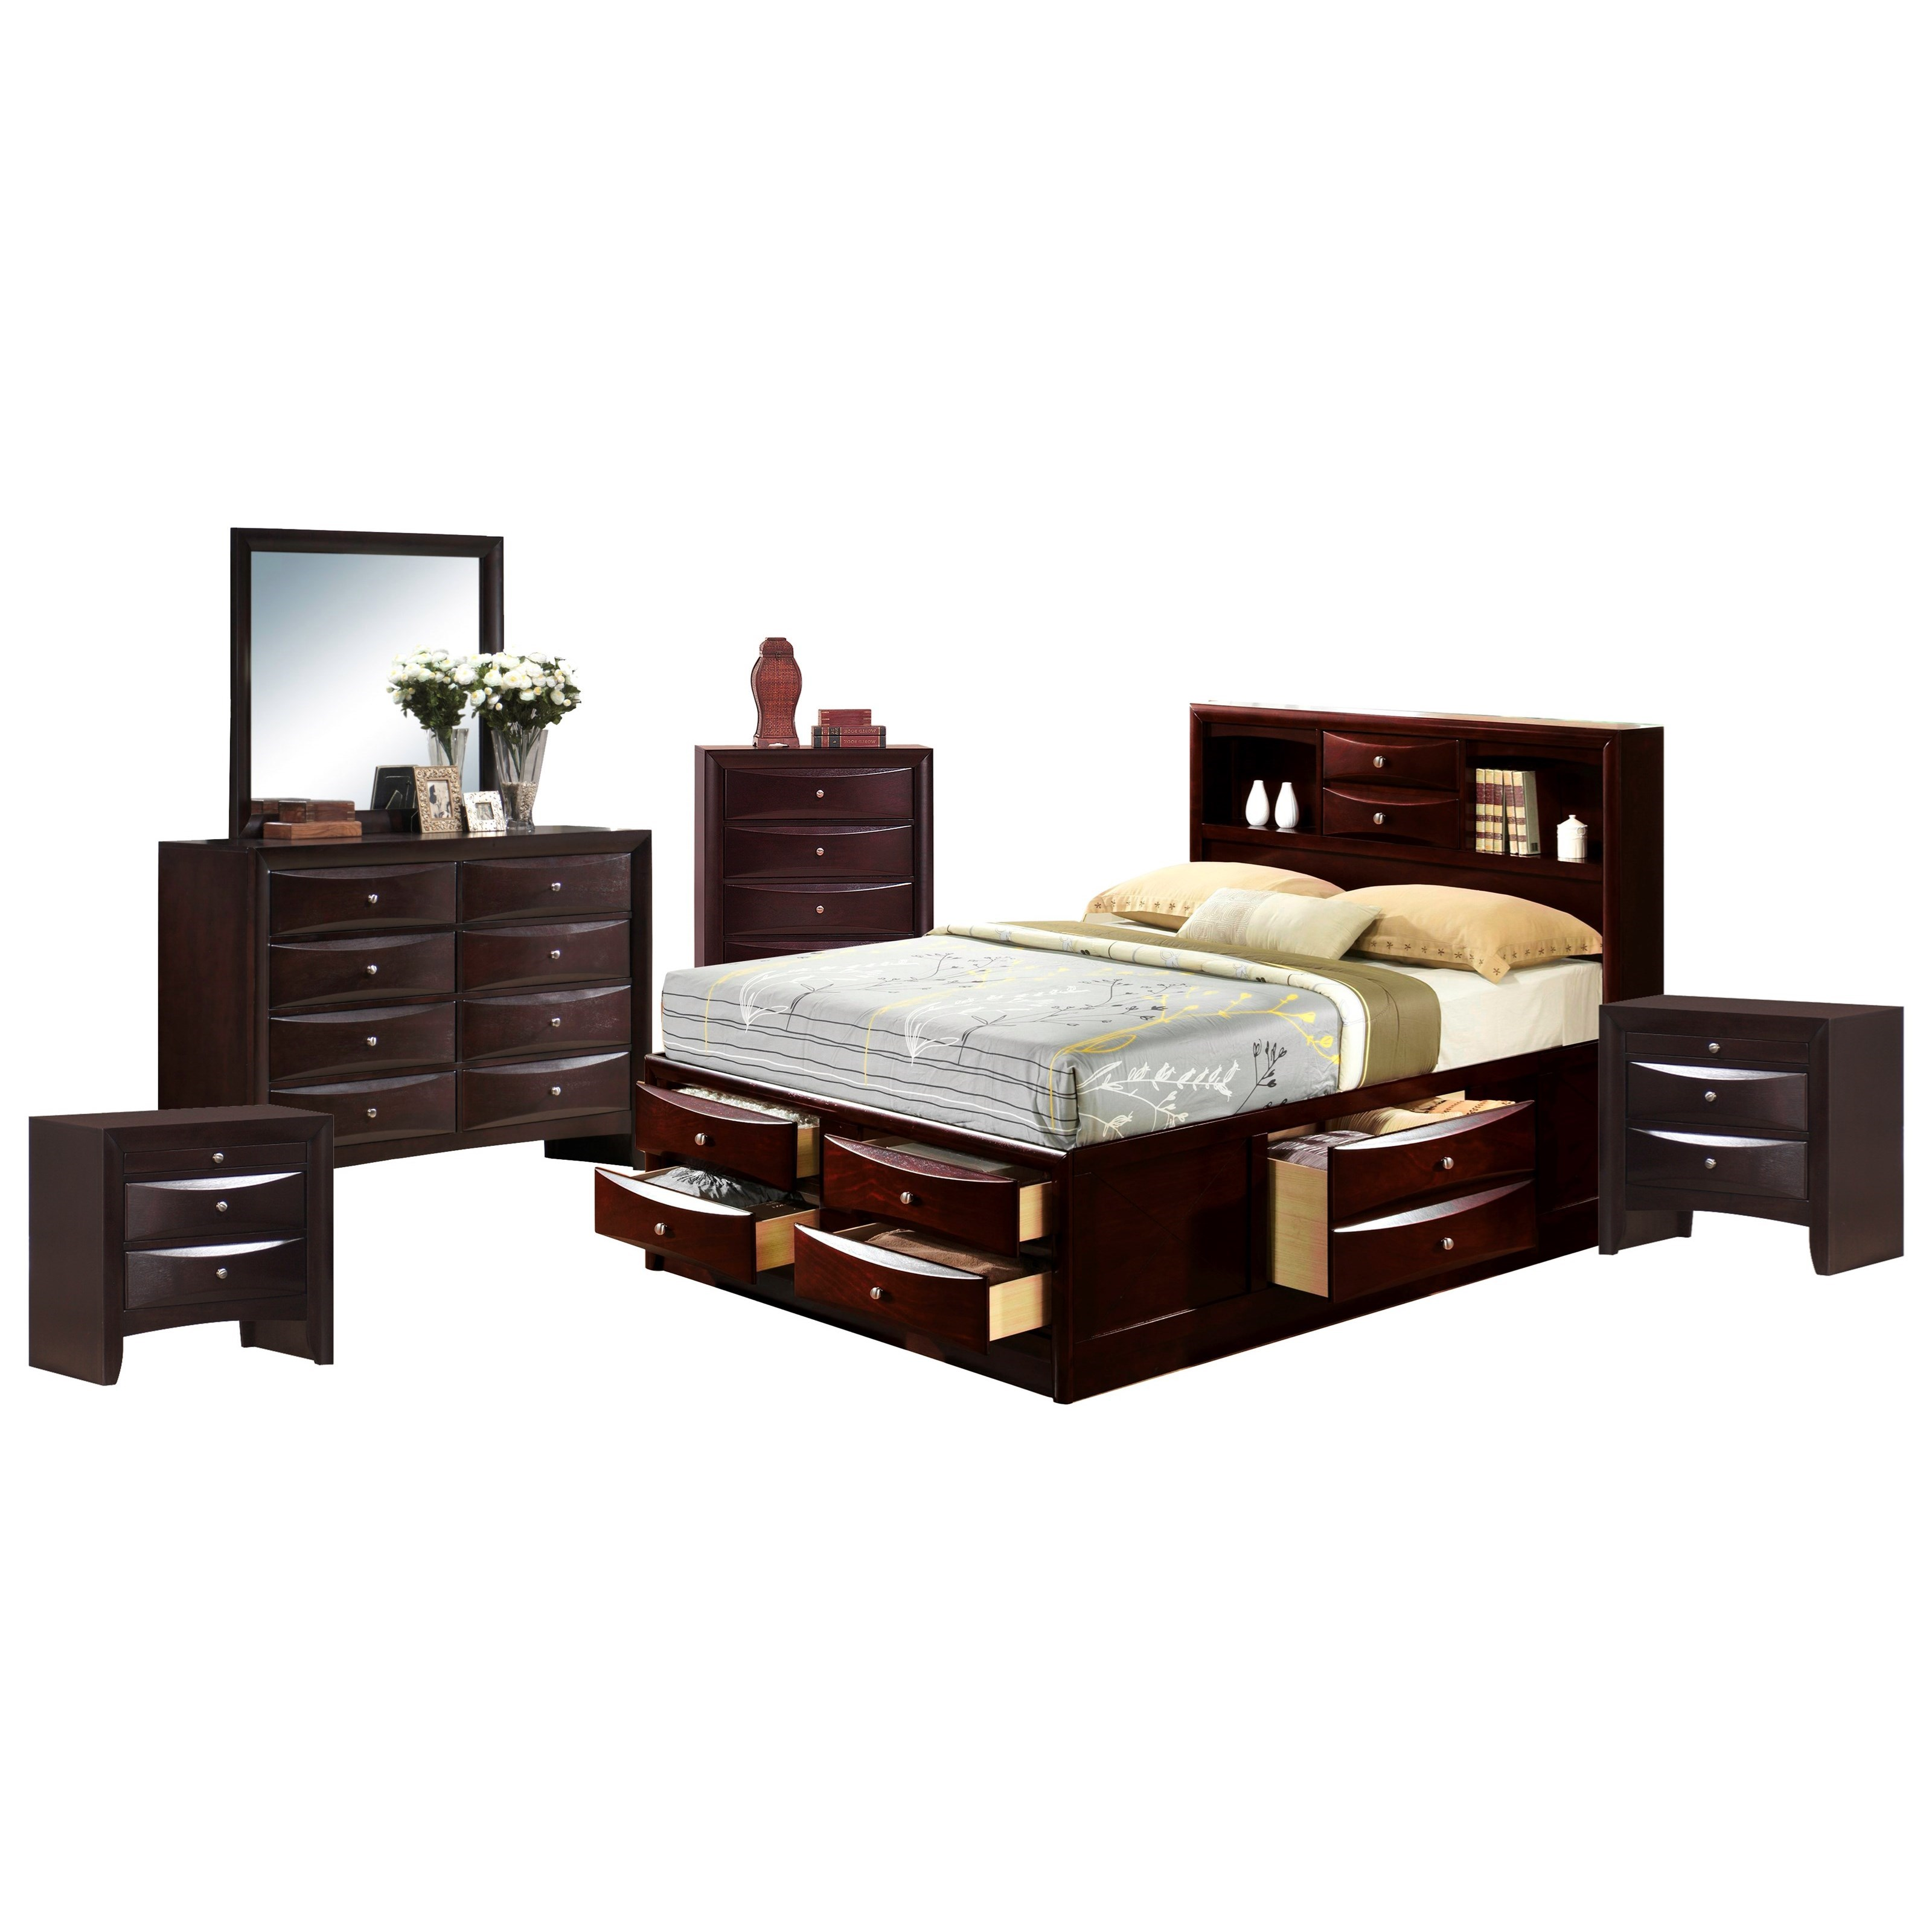 Emily King Bedroom Group by Elements International at Wilcox Furniture